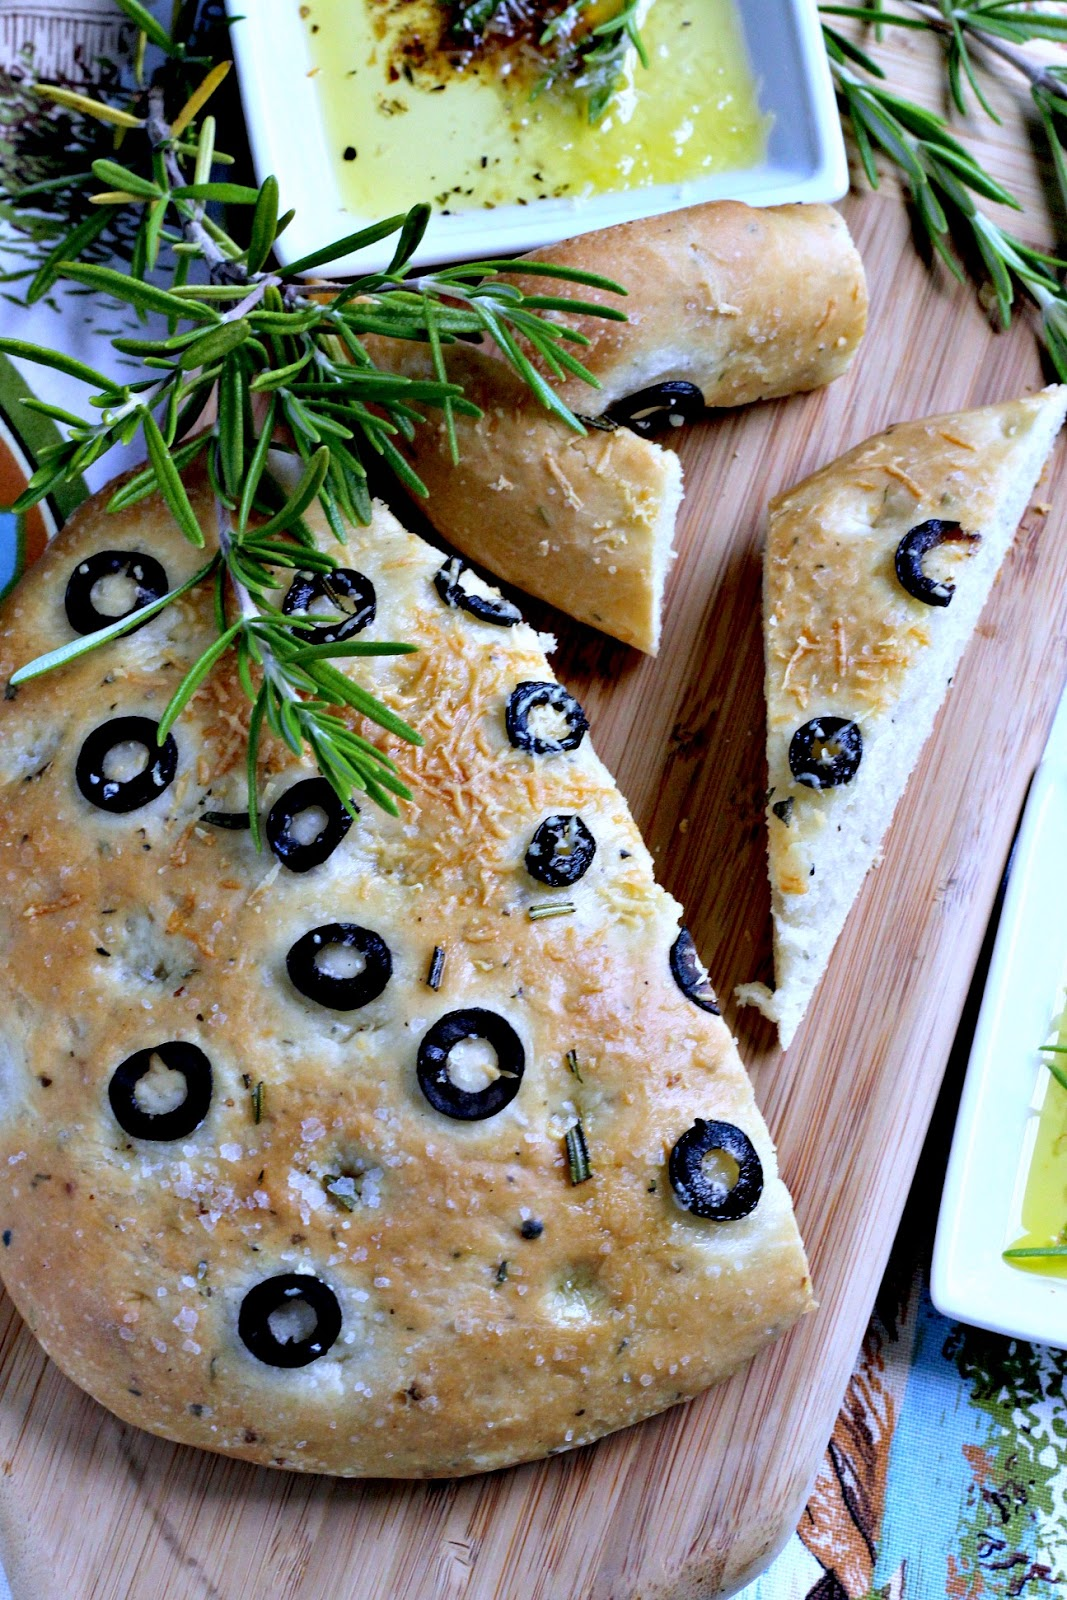 Top The Focaccia Dough As You Please Sliced Olives Co Salt And Herbs Are What I Used Other Common Toppings Include Mushrooms Green Onions Or